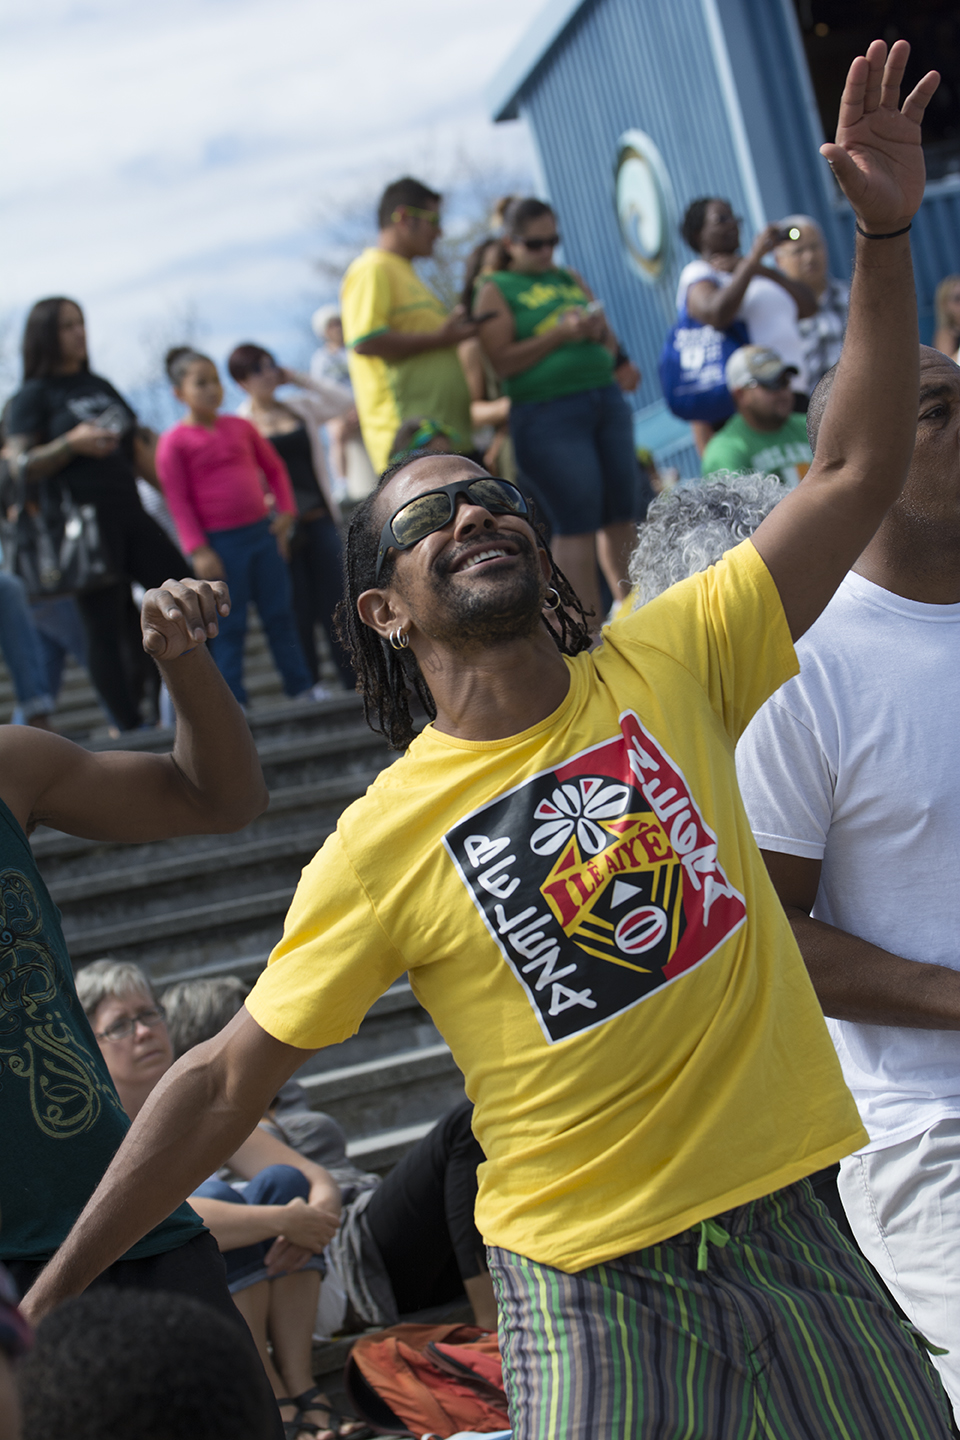 20150921_brazilian_day_philly_144